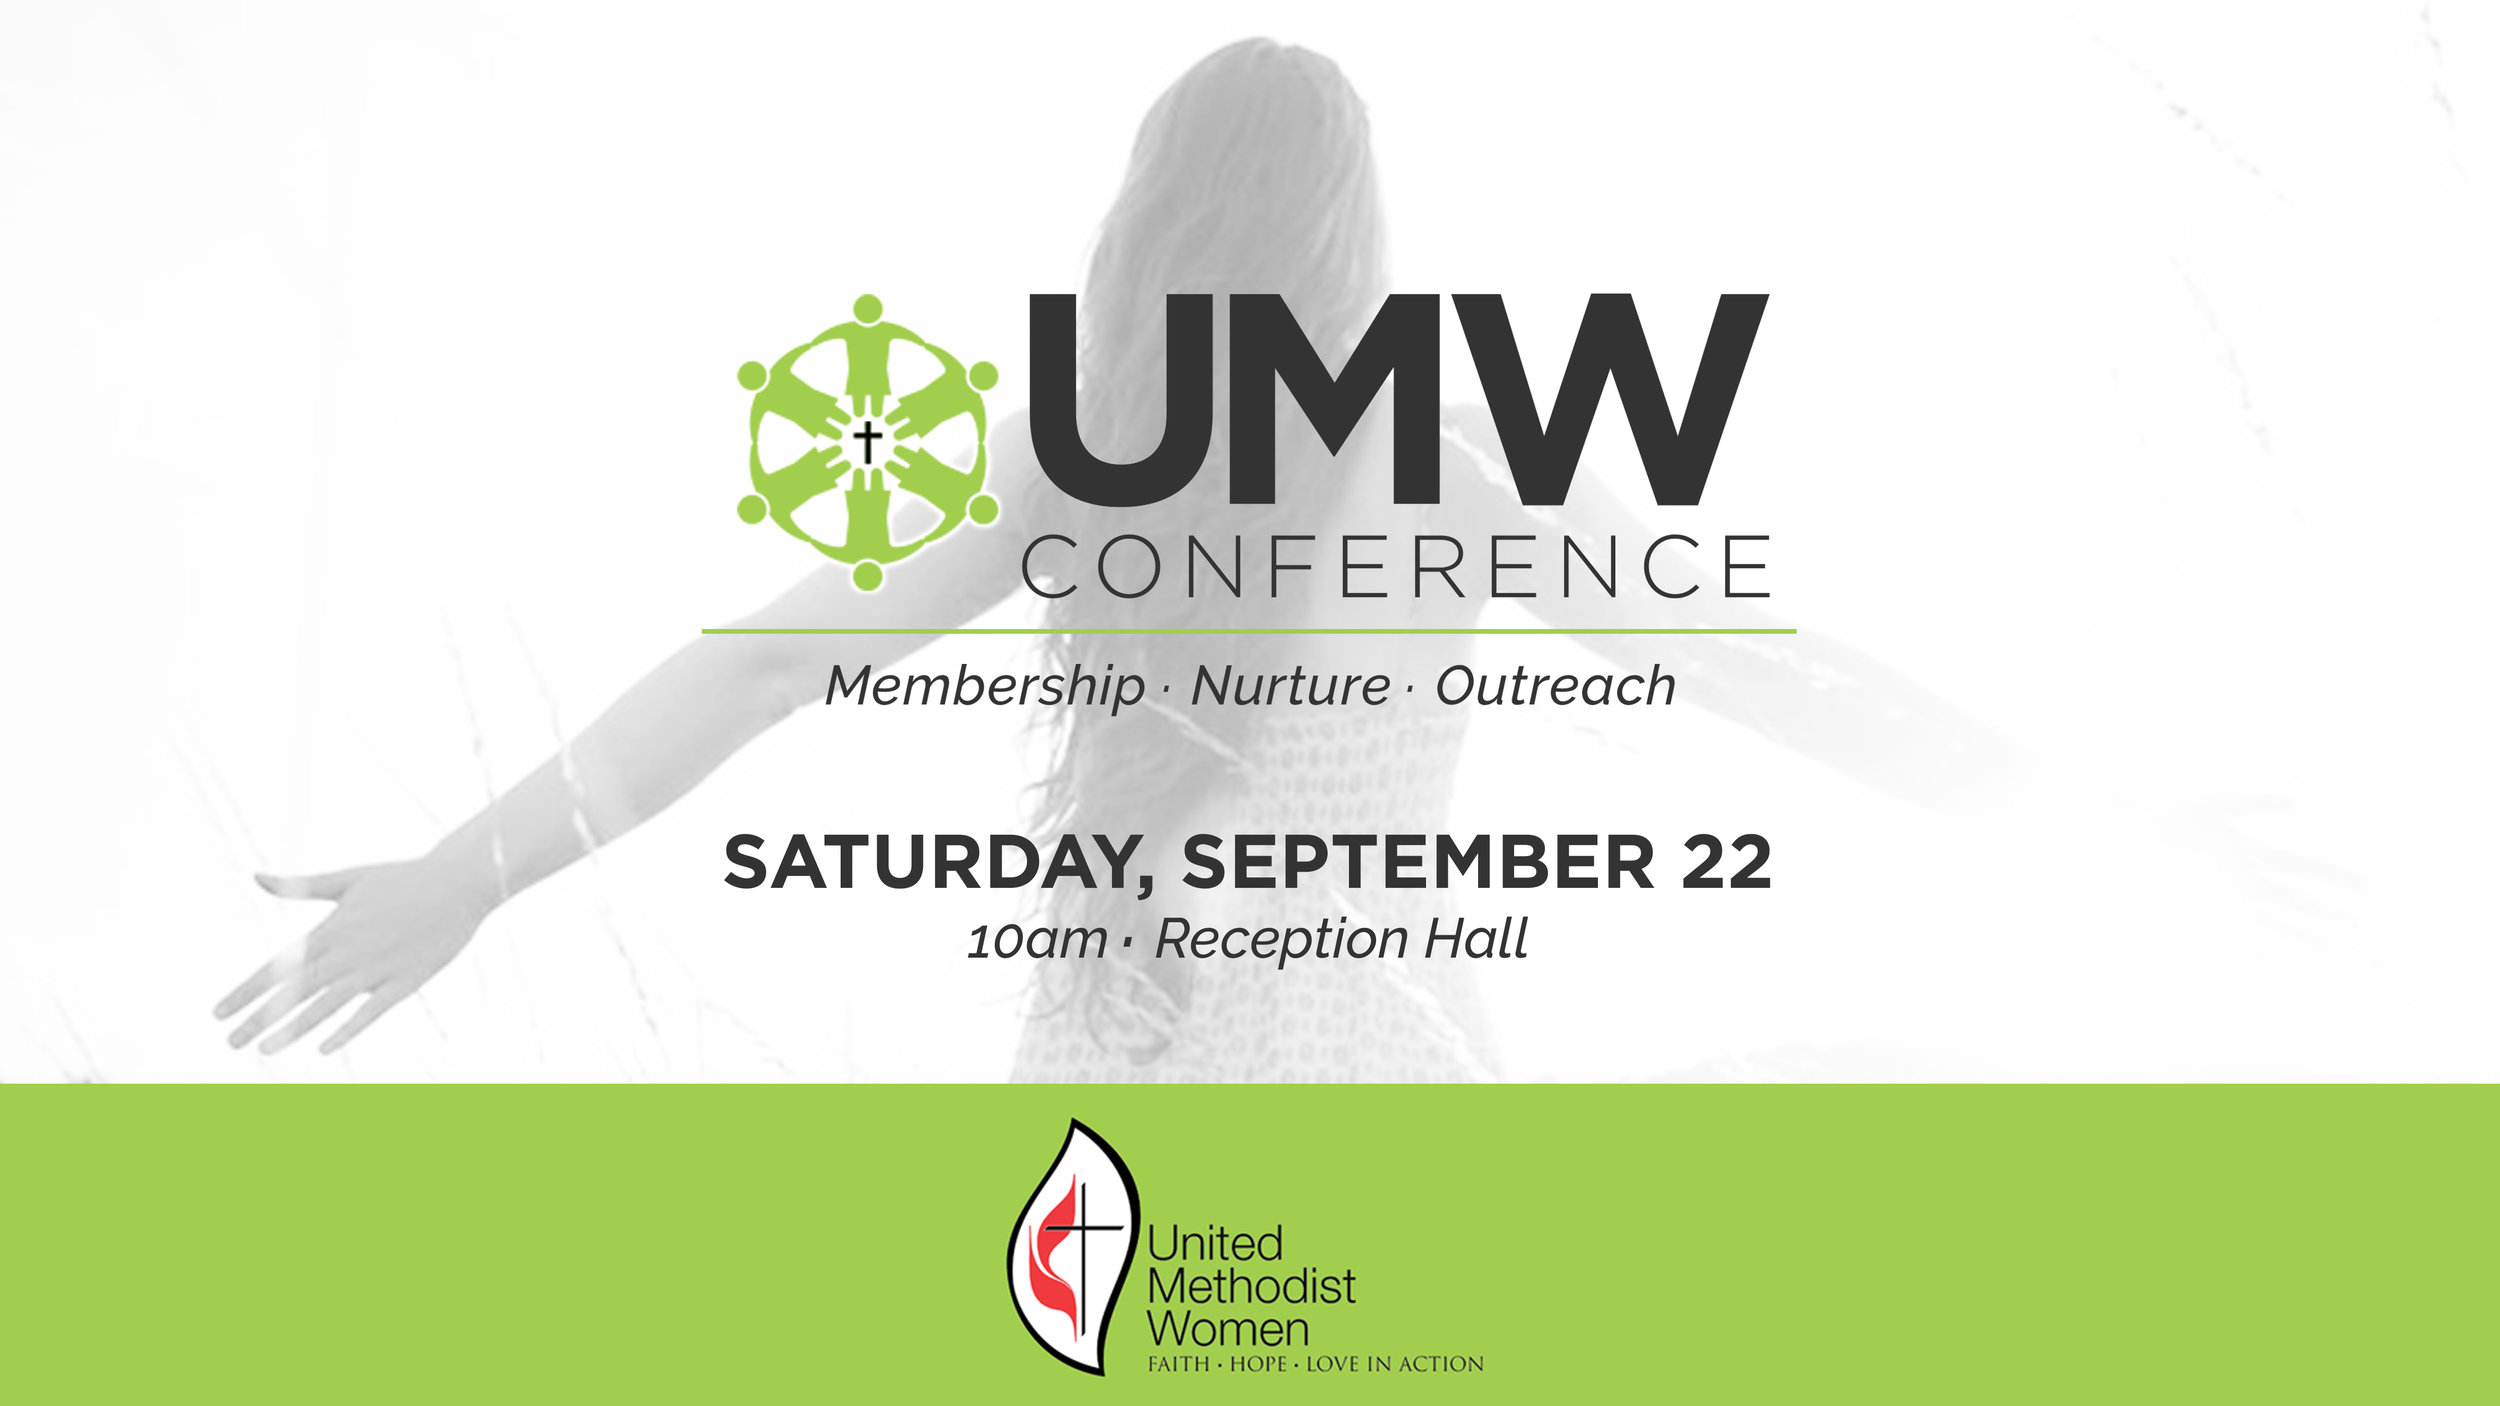 screen_umw_conference_2018.jpg